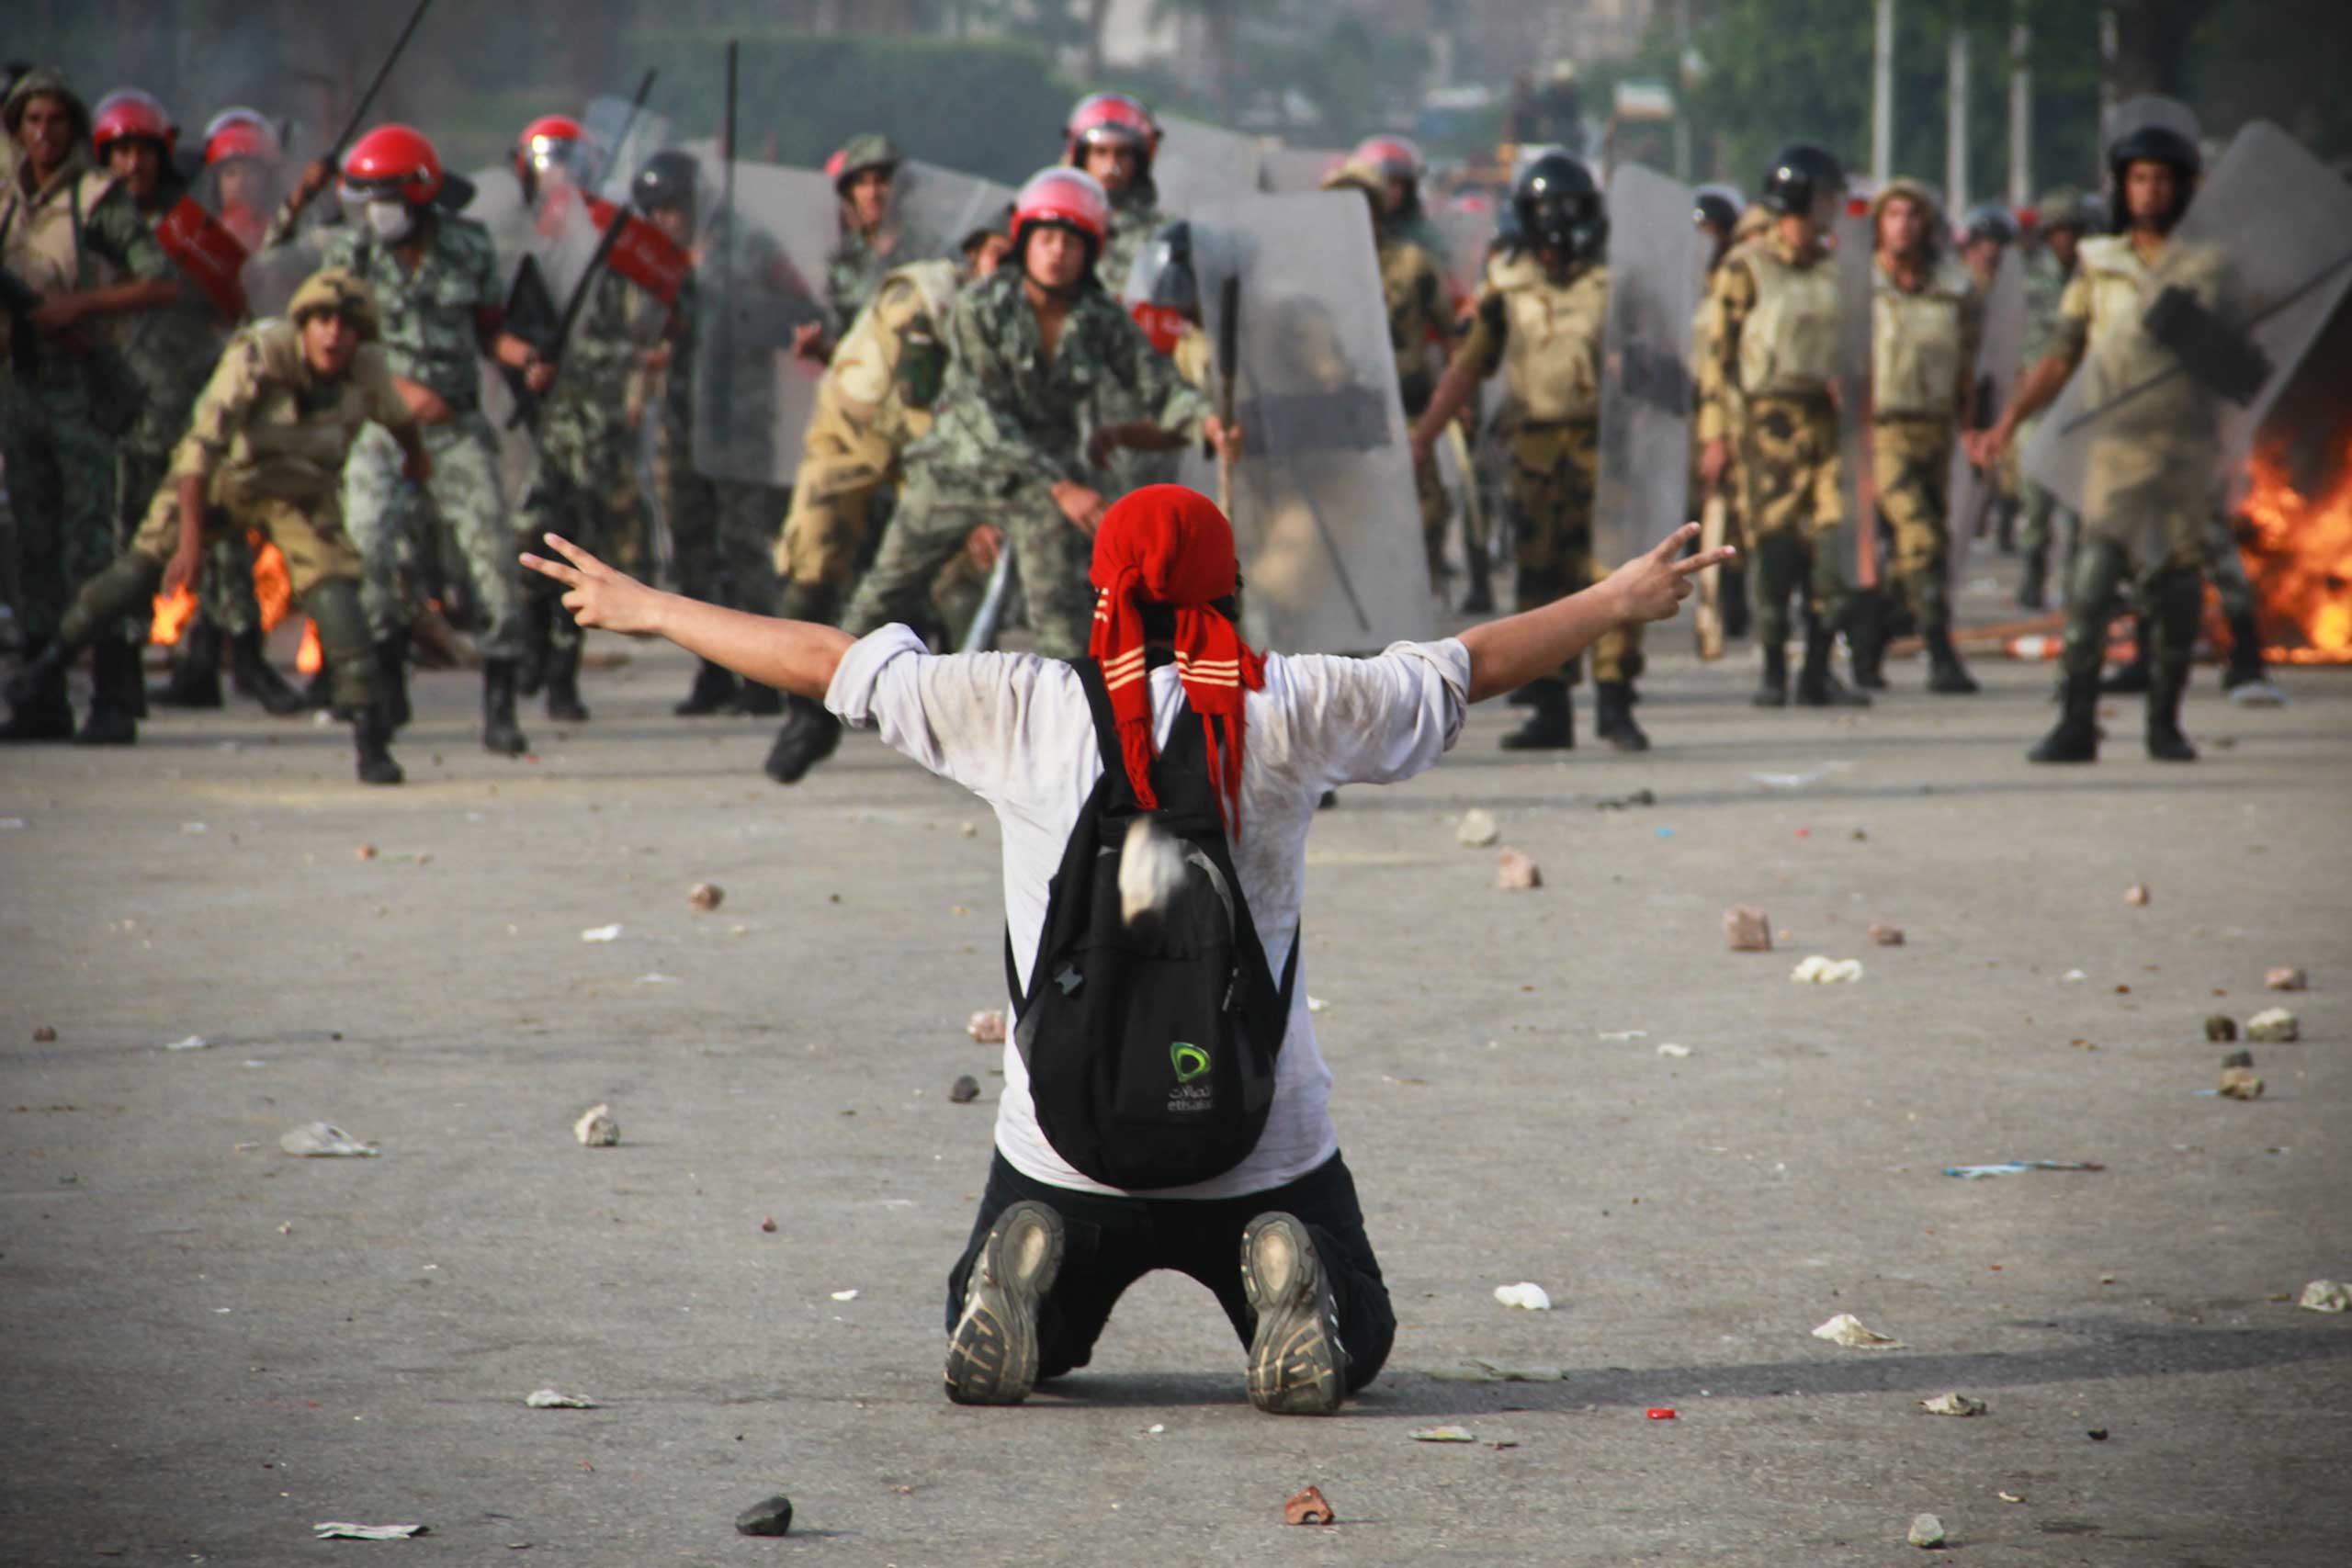 A protester raises his arms in defiance of security forces as projectiles and rubber bullets fly by during a clash in the Abassiya neighborhood of Cairo, Egypt, May 2012.